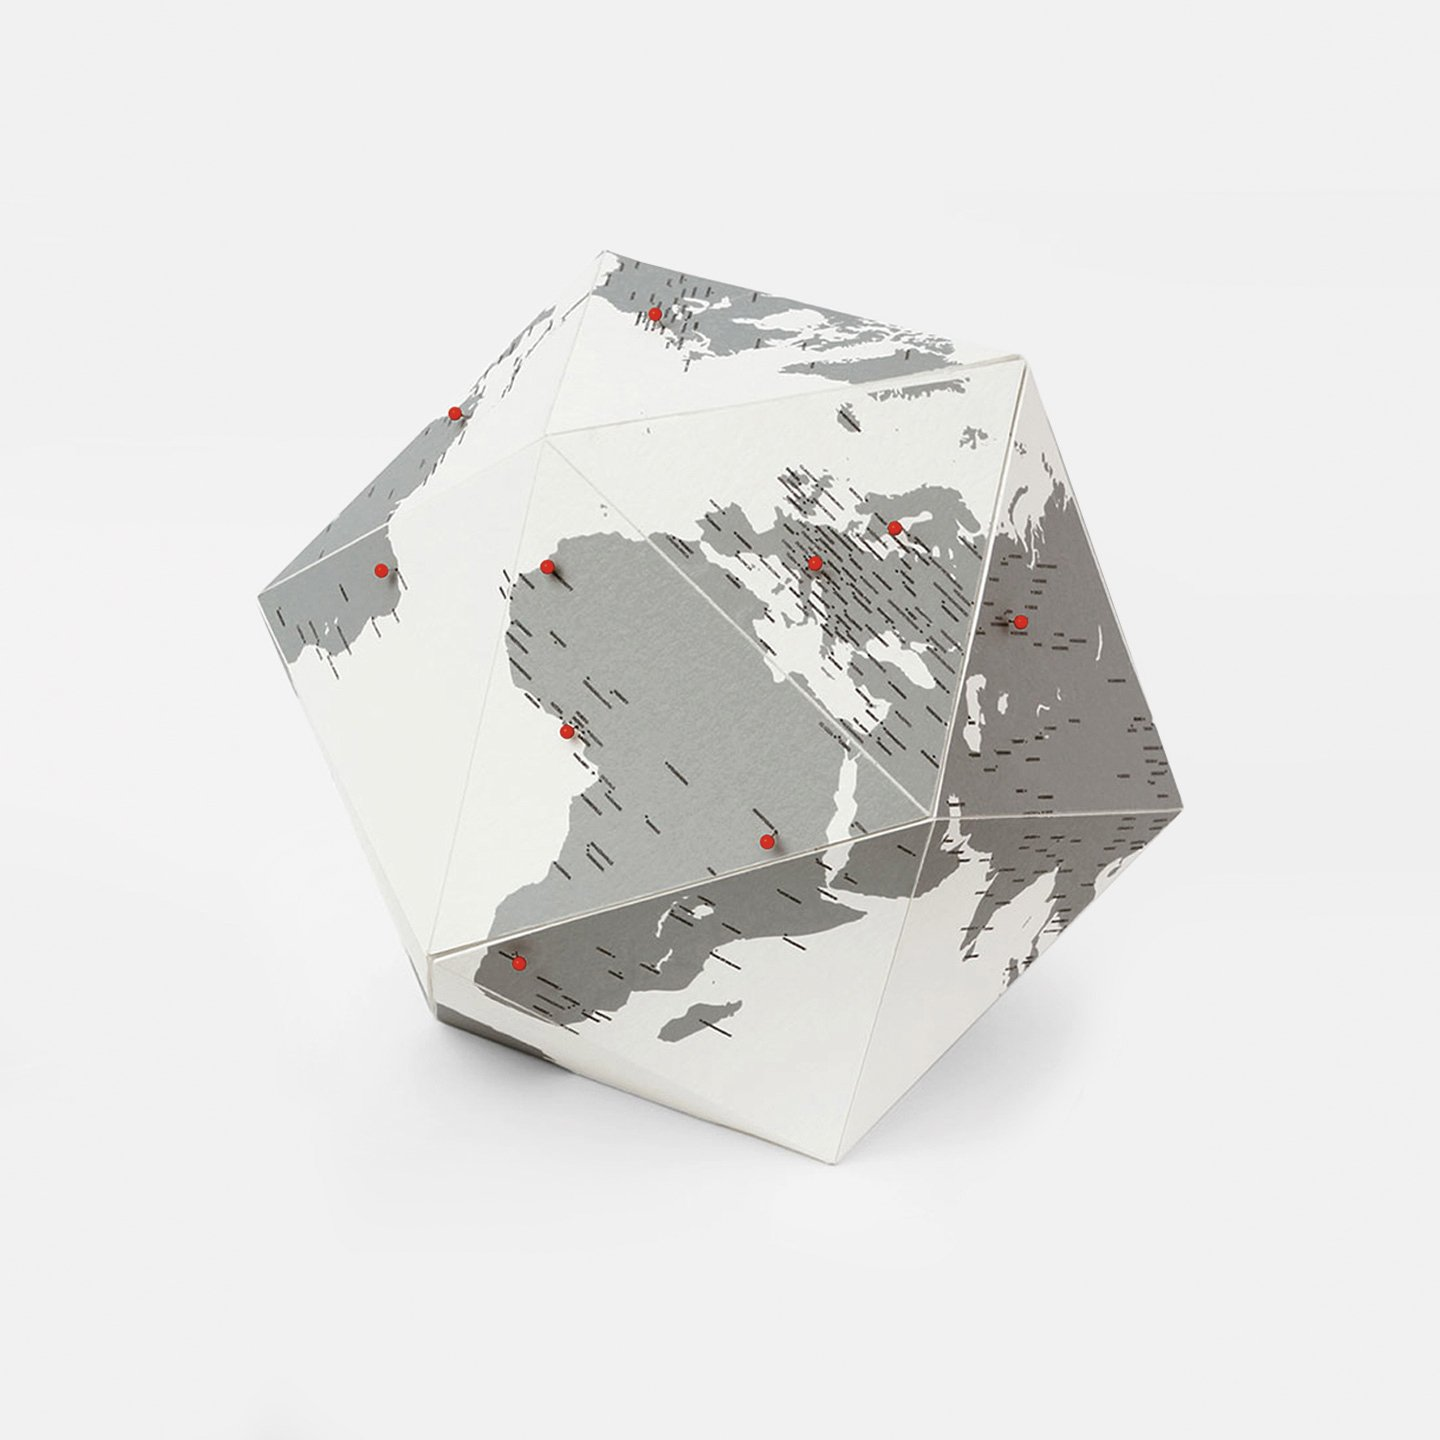 Here Foldable Personal Globe, Small